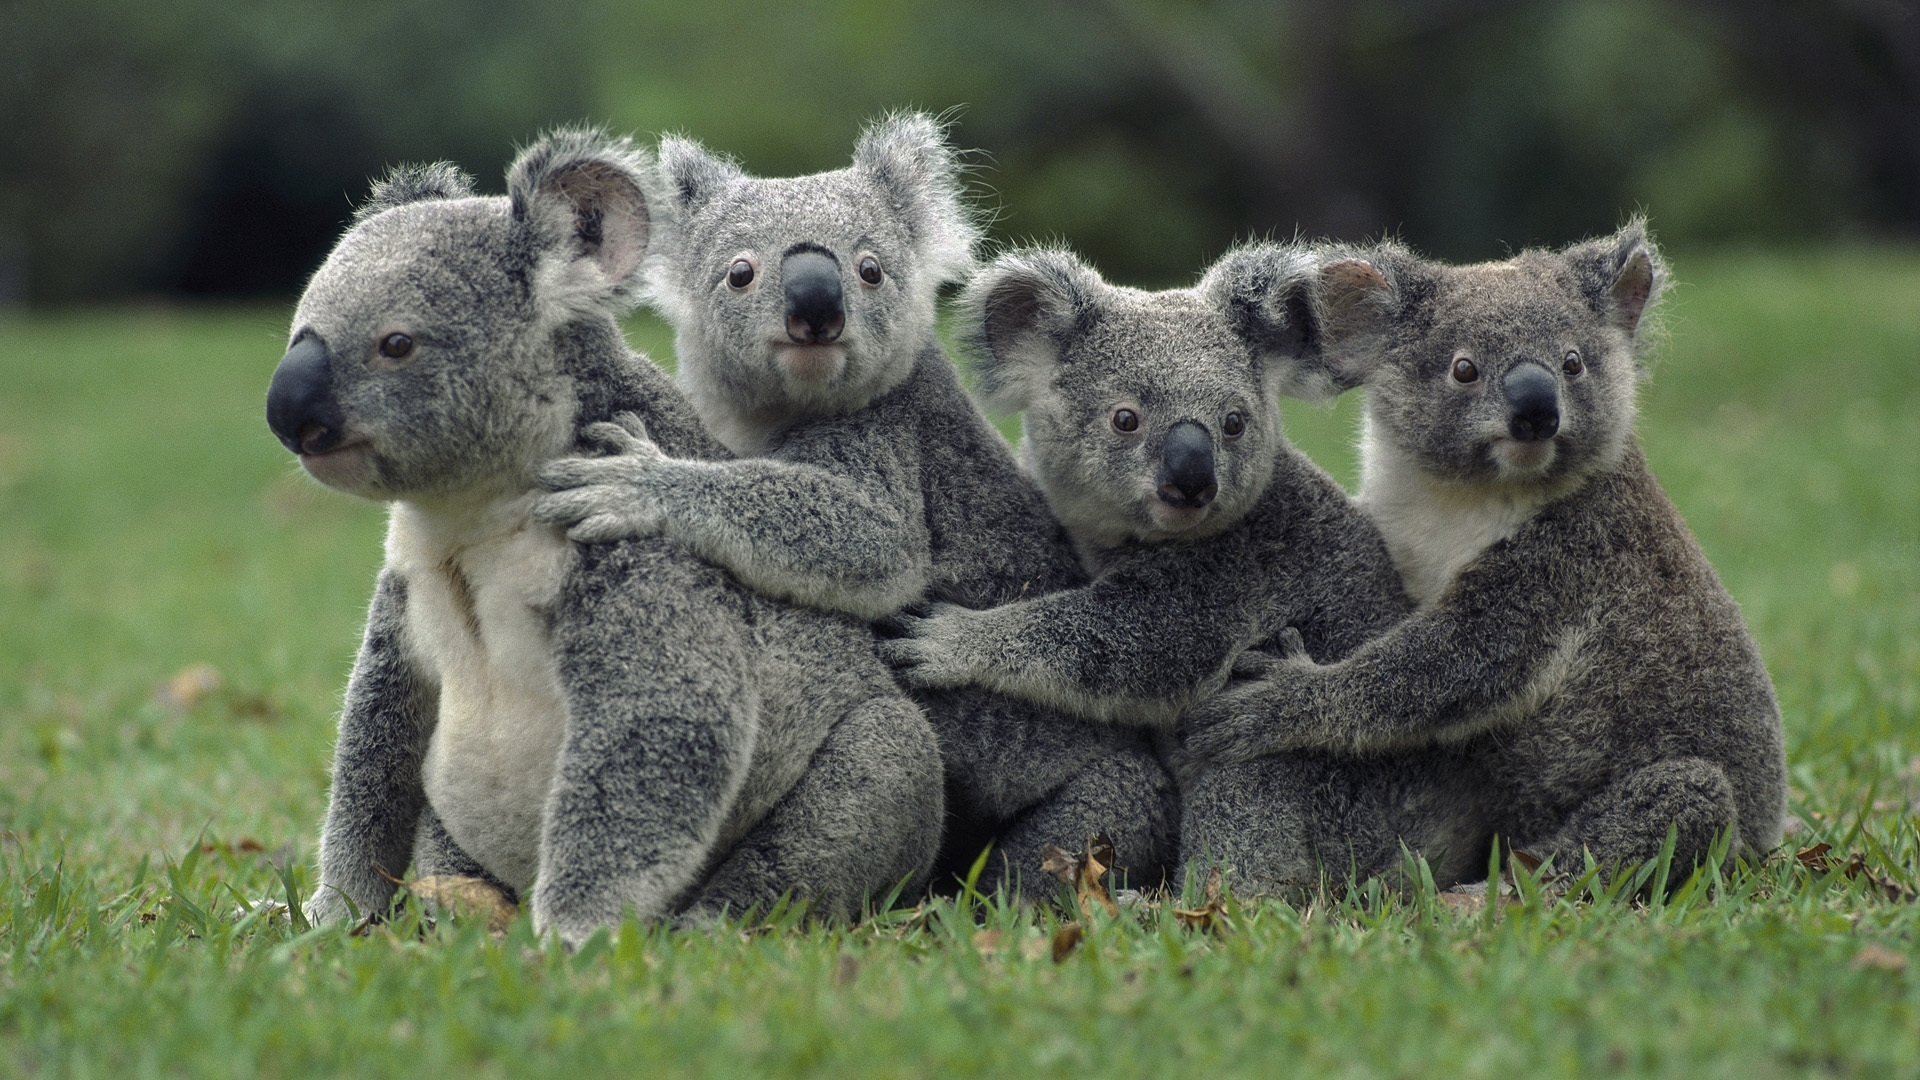 45038 download wallpaper Animals, Koalas screensavers and pictures for free